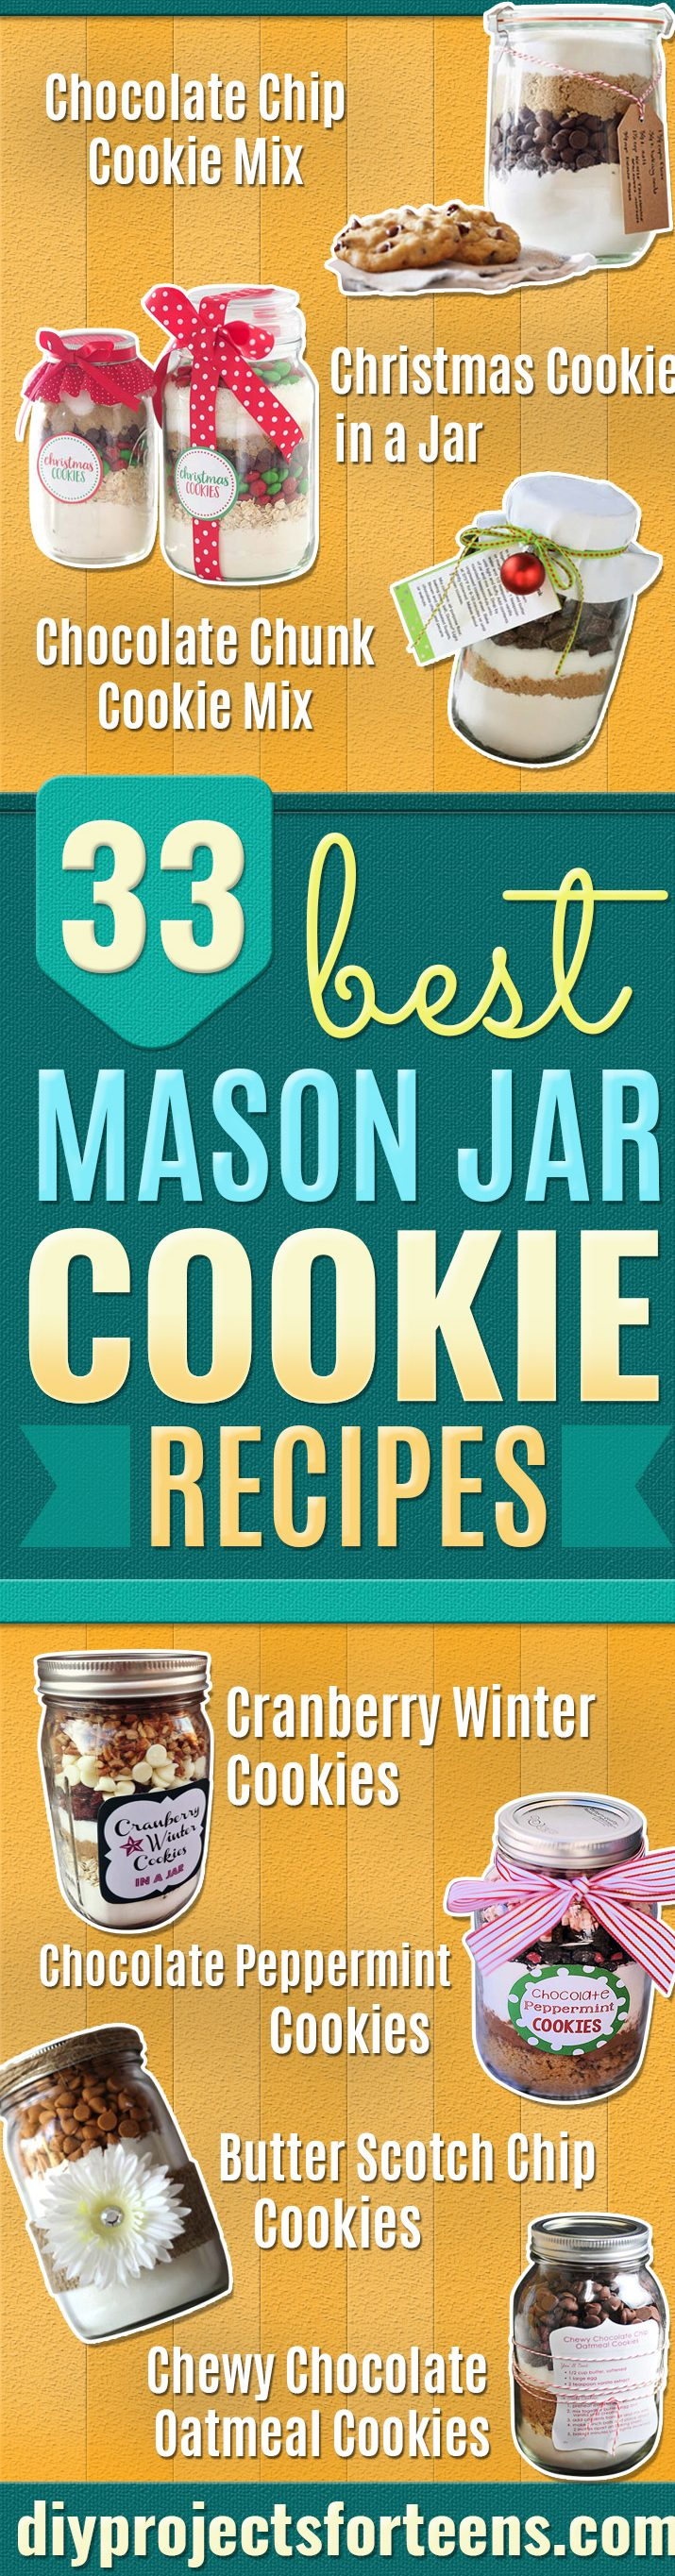 Best Mason Jar Cookies - Mason Jar Cookie Recipe Mix for Cute Decorated DIY Gifts - Easy Chocolate Chip Recipes, Christmas Presents and Wedding Favors in Mason Jars - Fun Ideas for DIY Parties, Easy Recipes for Teens, Teenagers, Kids and Teens - Cheap Last Mintue Gift Ideas for Friends, Family and Neighbors